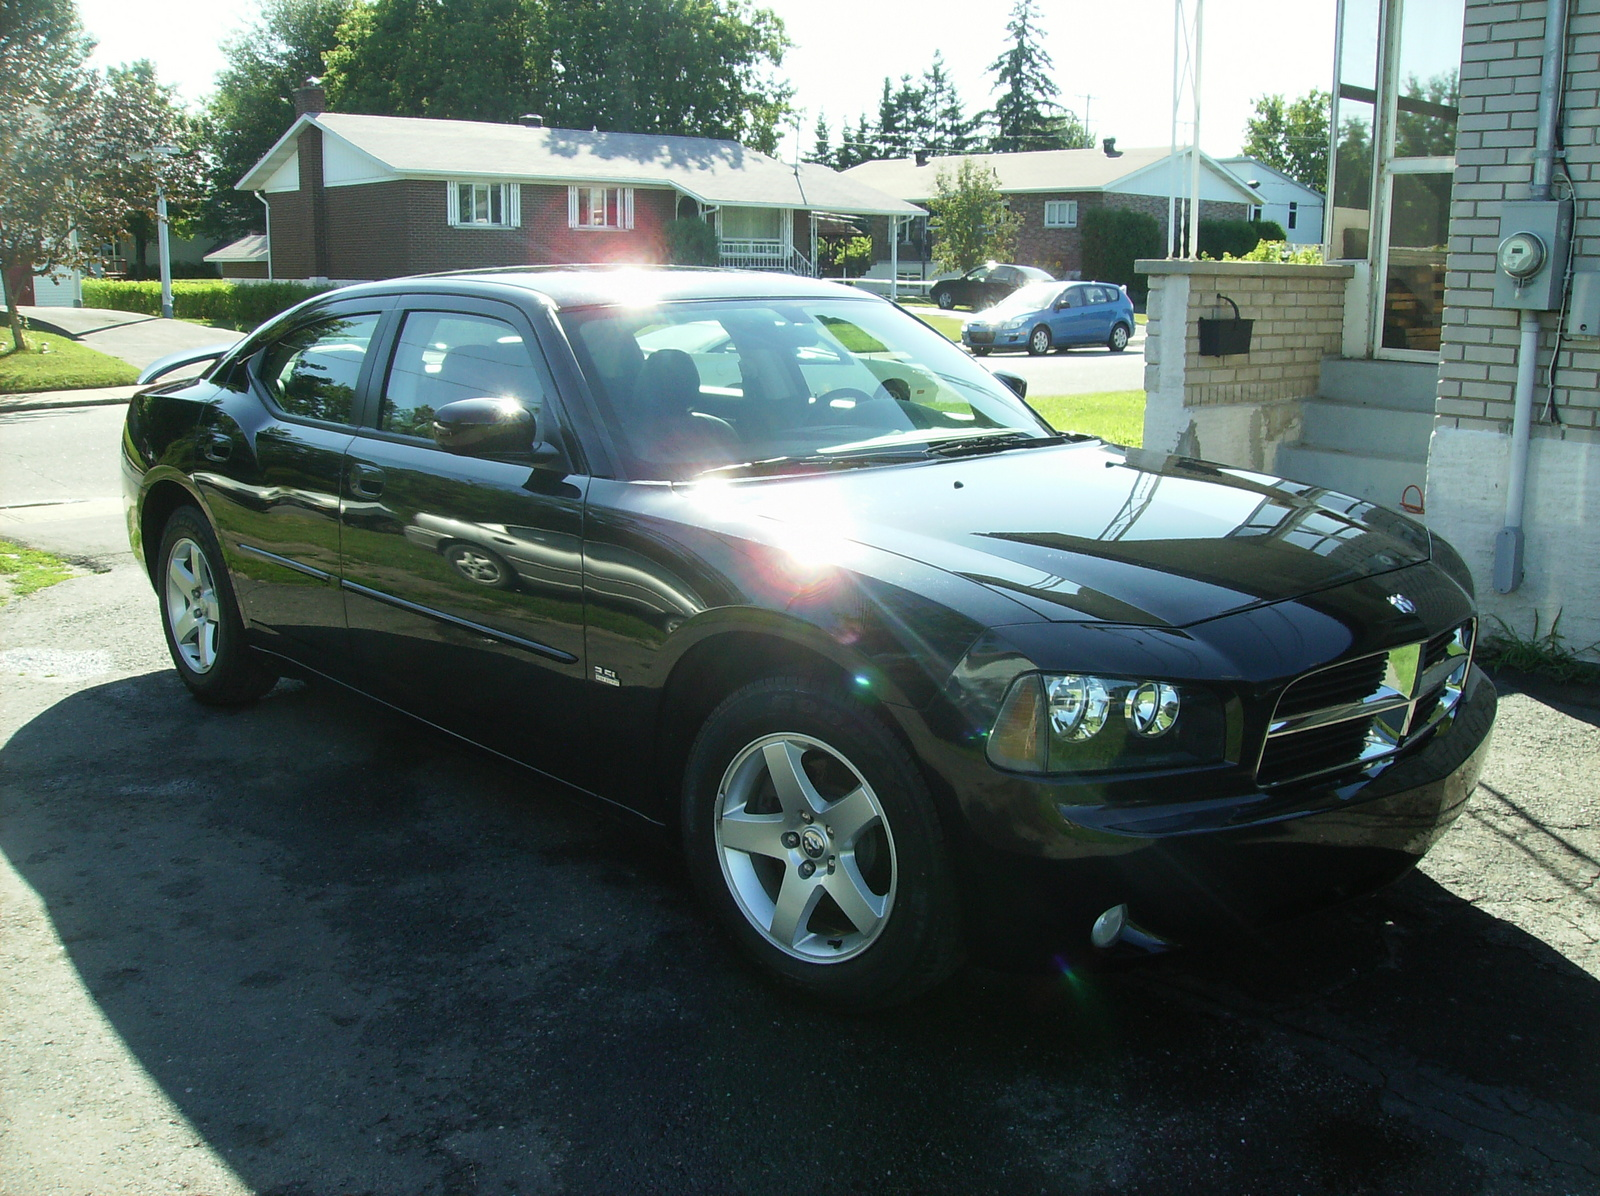 2010 srt charger price. Black Bedroom Furniture Sets. Home Design Ideas